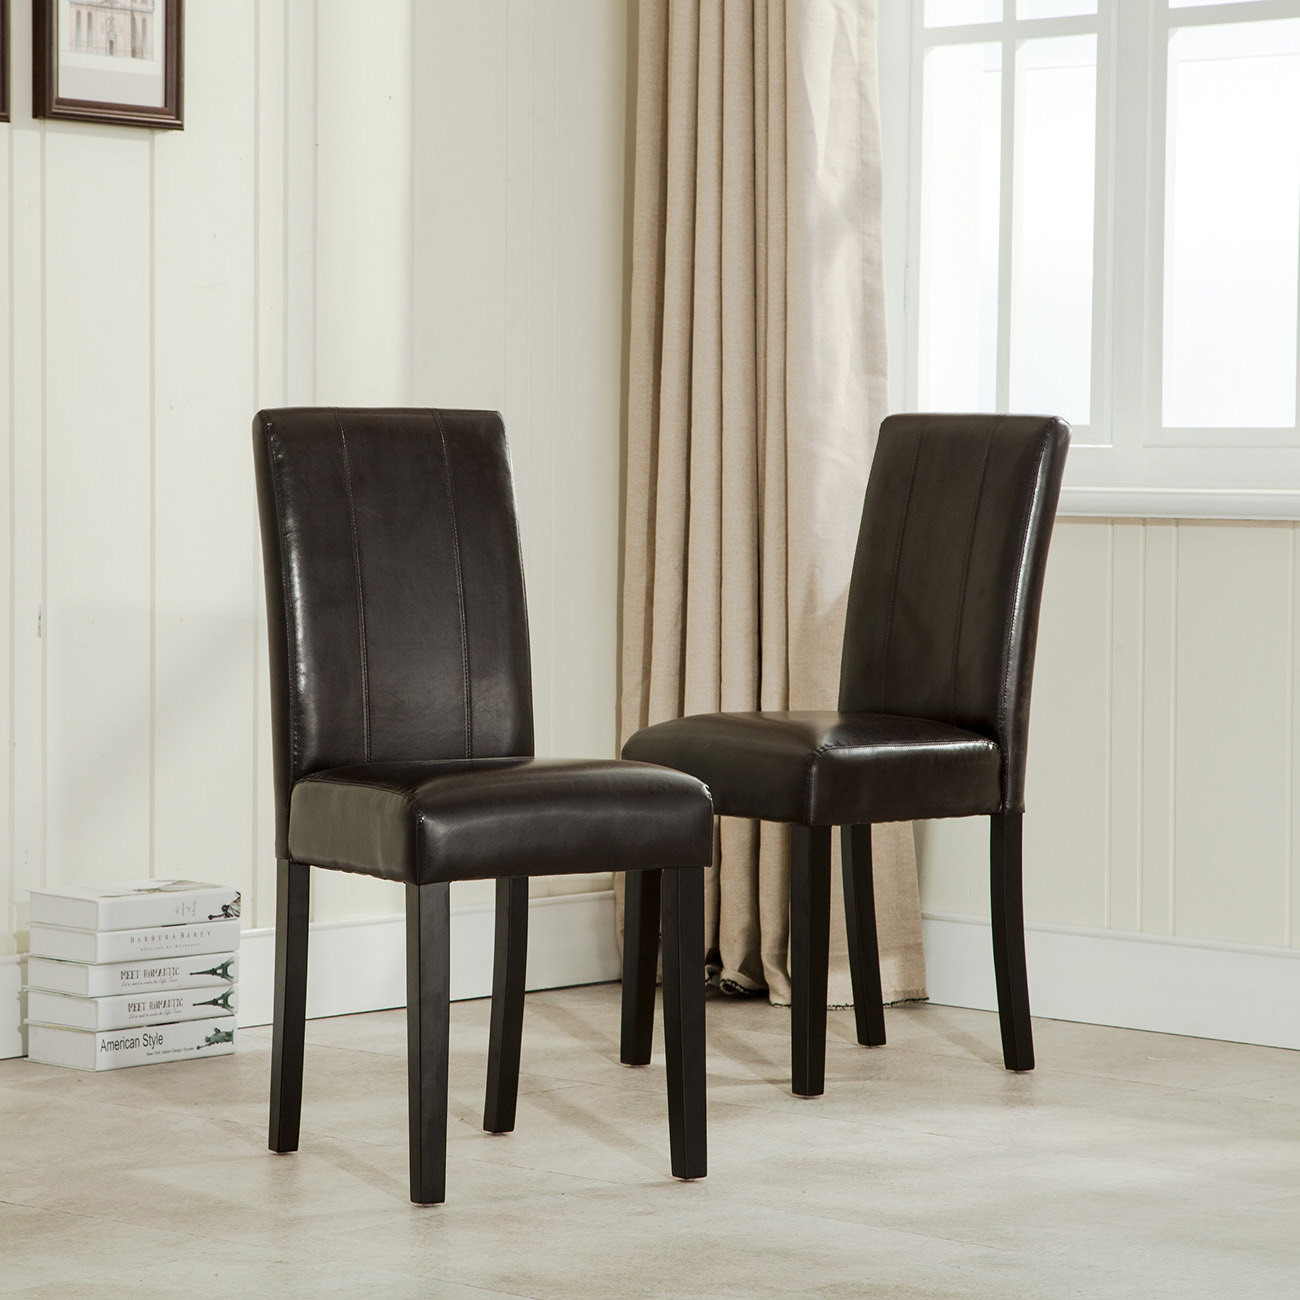 Leather Dining Room Chairs Details About Elegant Modern Parsons Chair Leather Dining Living Room Chairs Seat Set Of 2